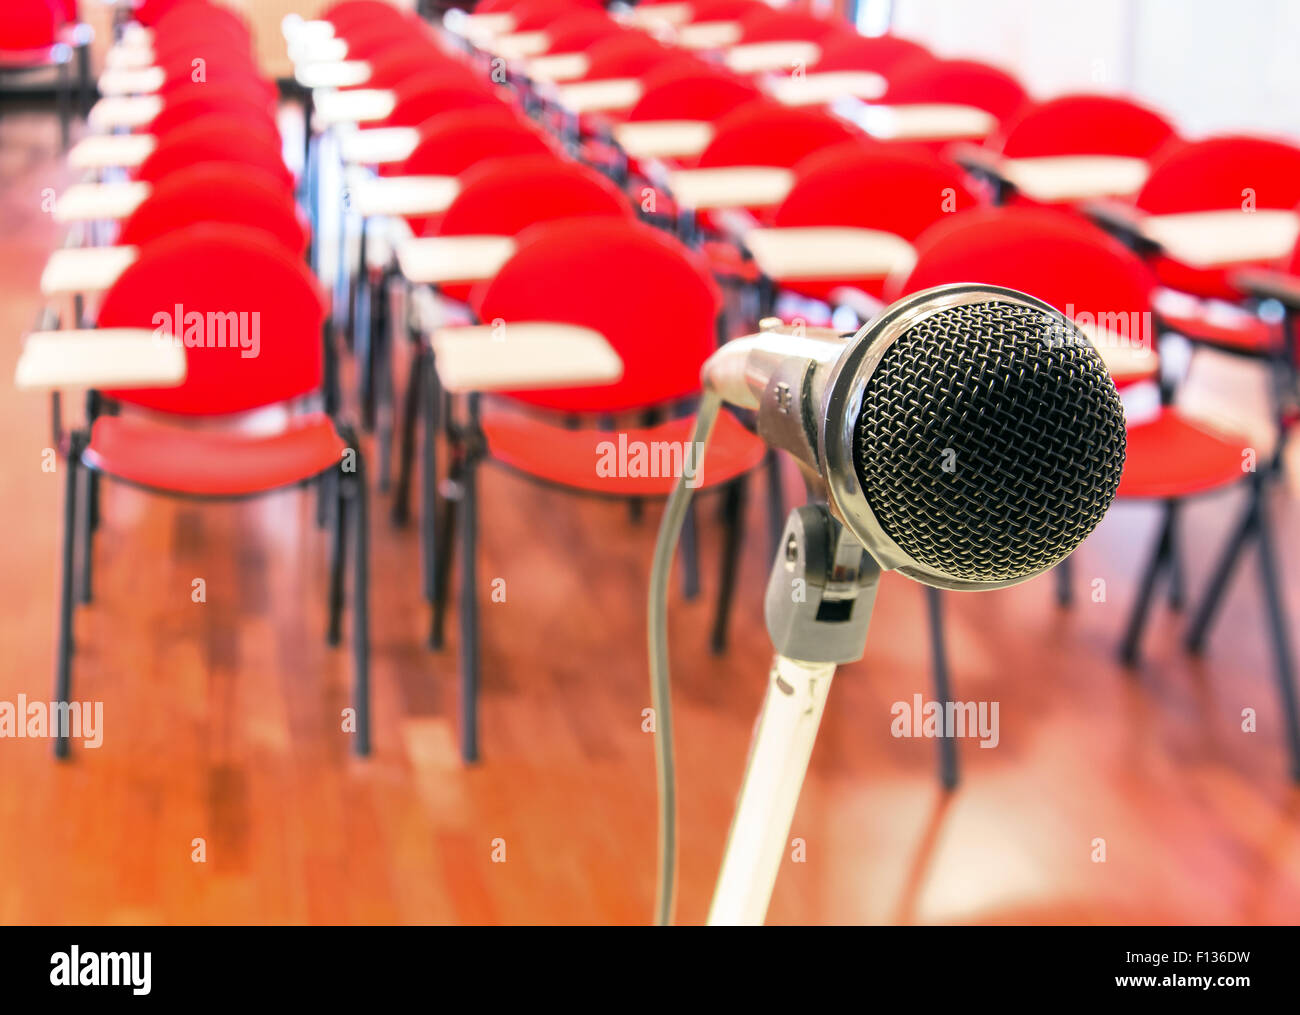 Close up of microphone in front of empty chairs in conference room - Stock Image